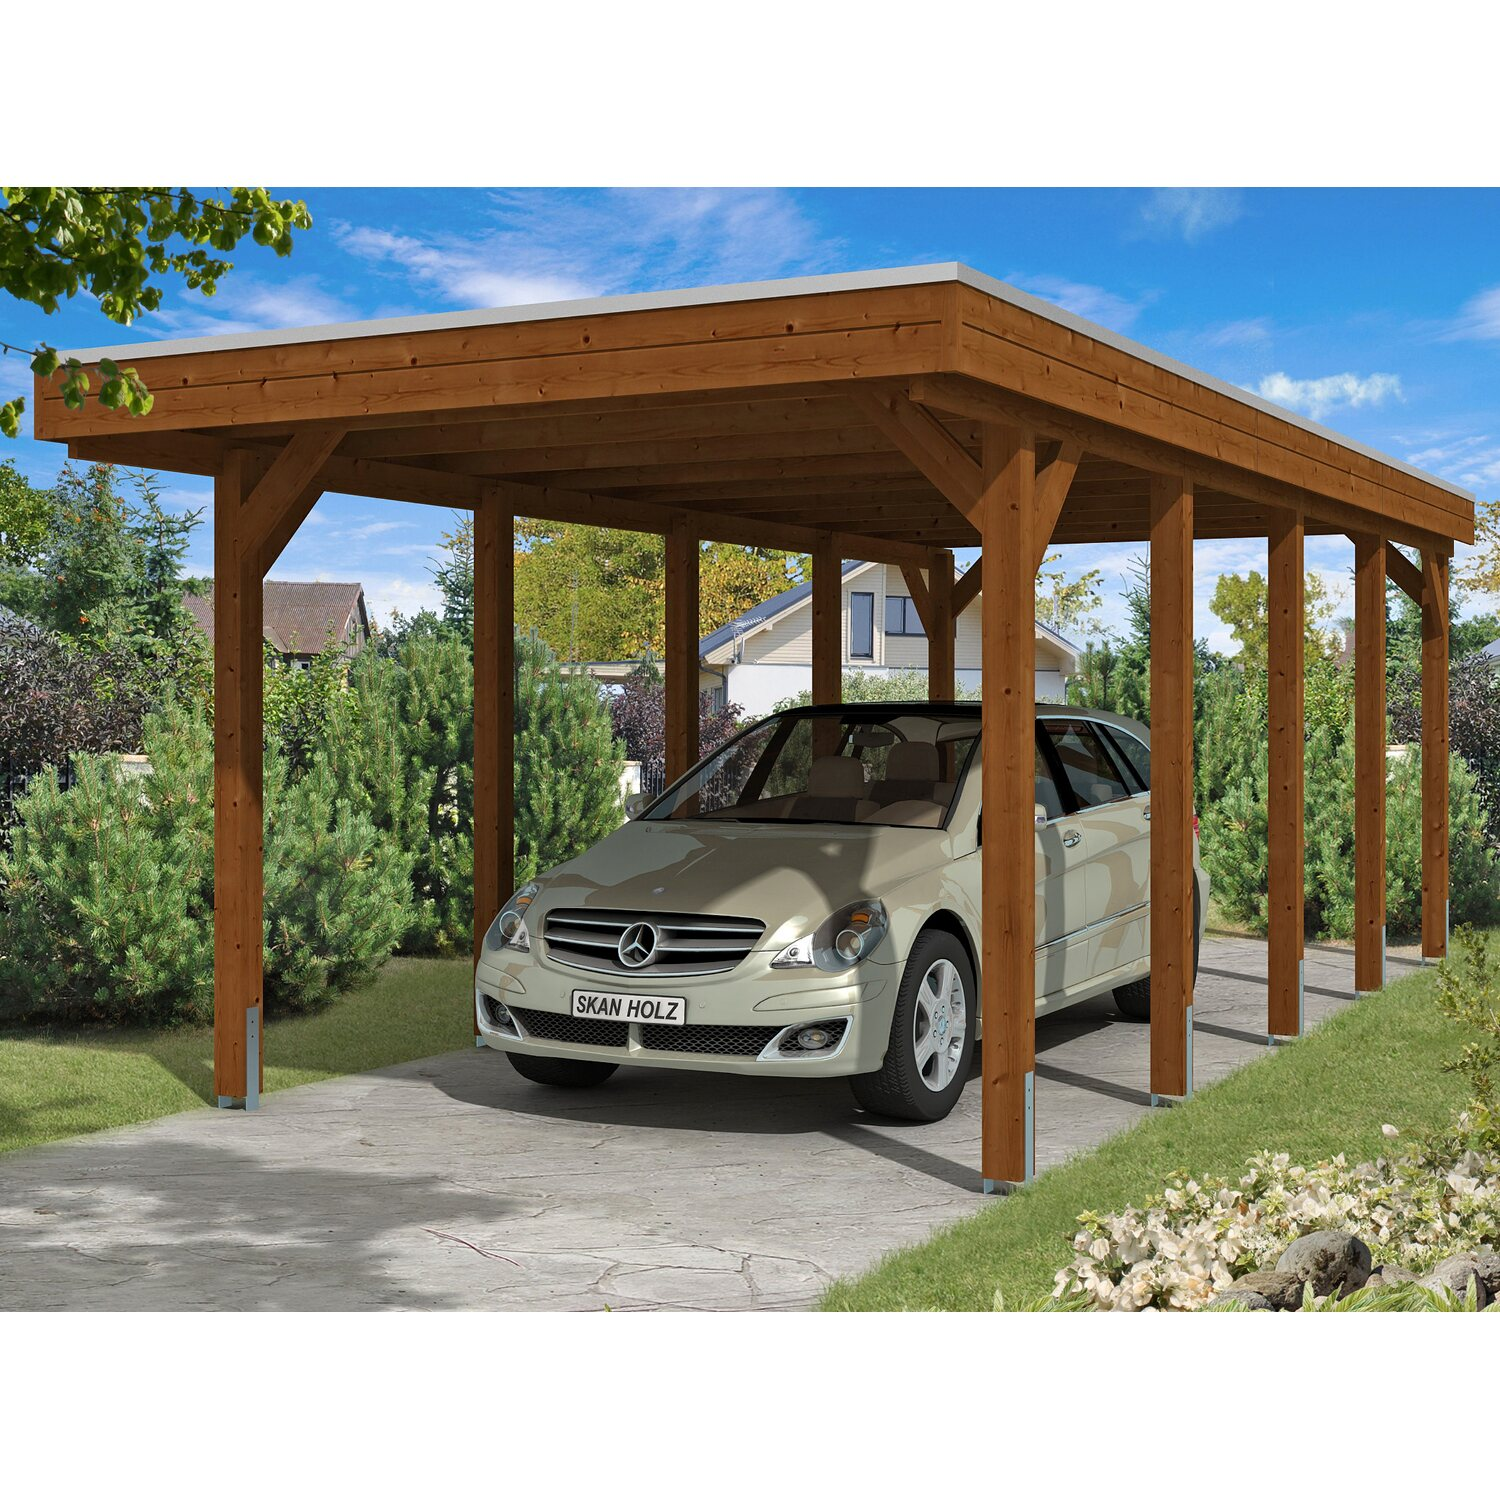 skan holz carport friesland 314 cm x 708 cm nussbaum kaufen bei obi. Black Bedroom Furniture Sets. Home Design Ideas